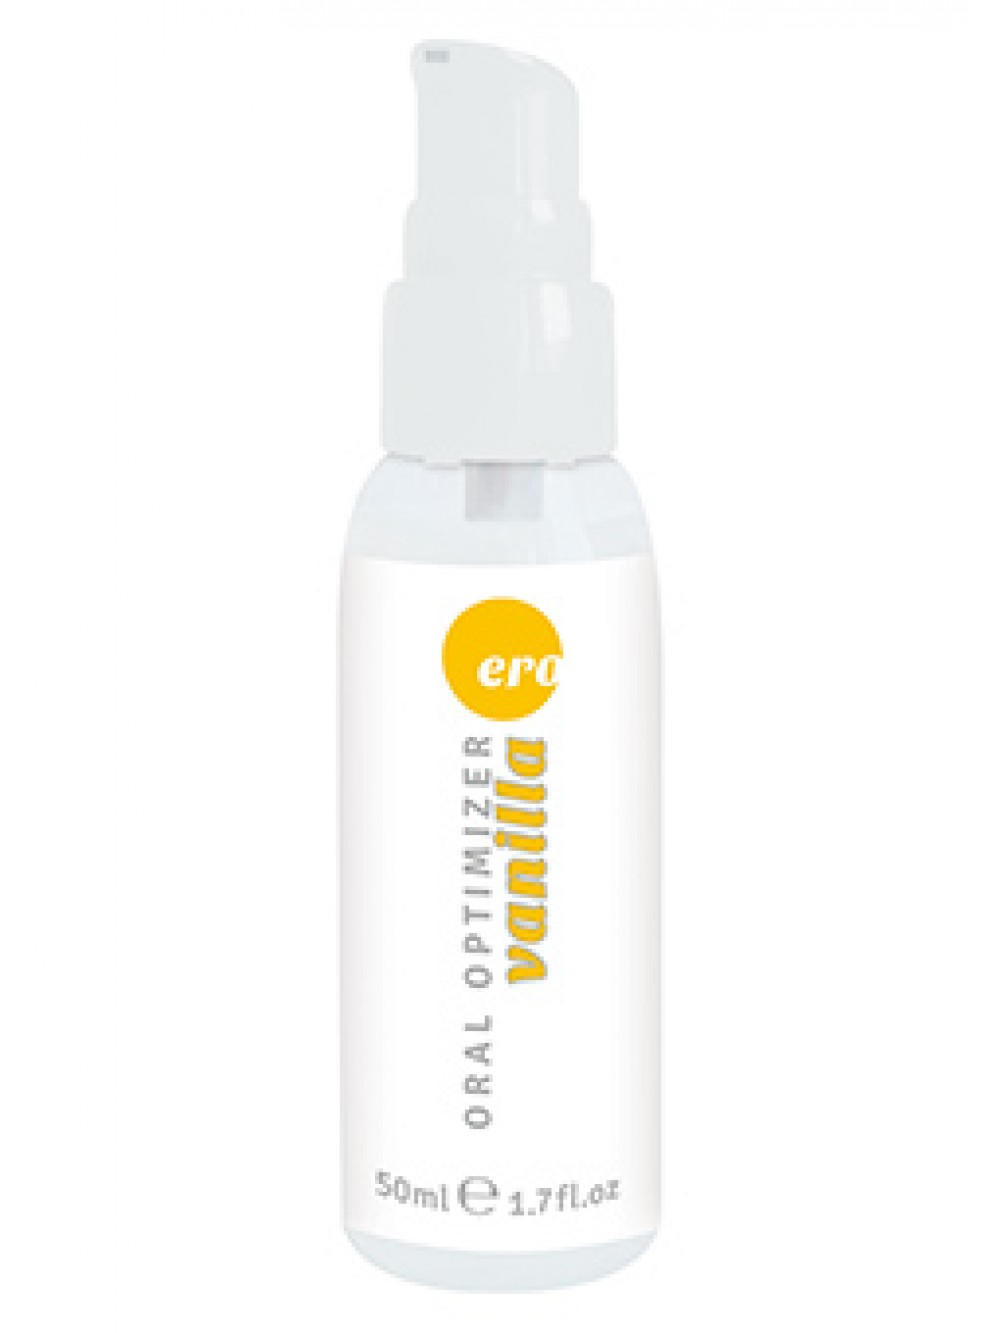 ORAL OPTIMIZER BLOWJOB GEL VANILLA